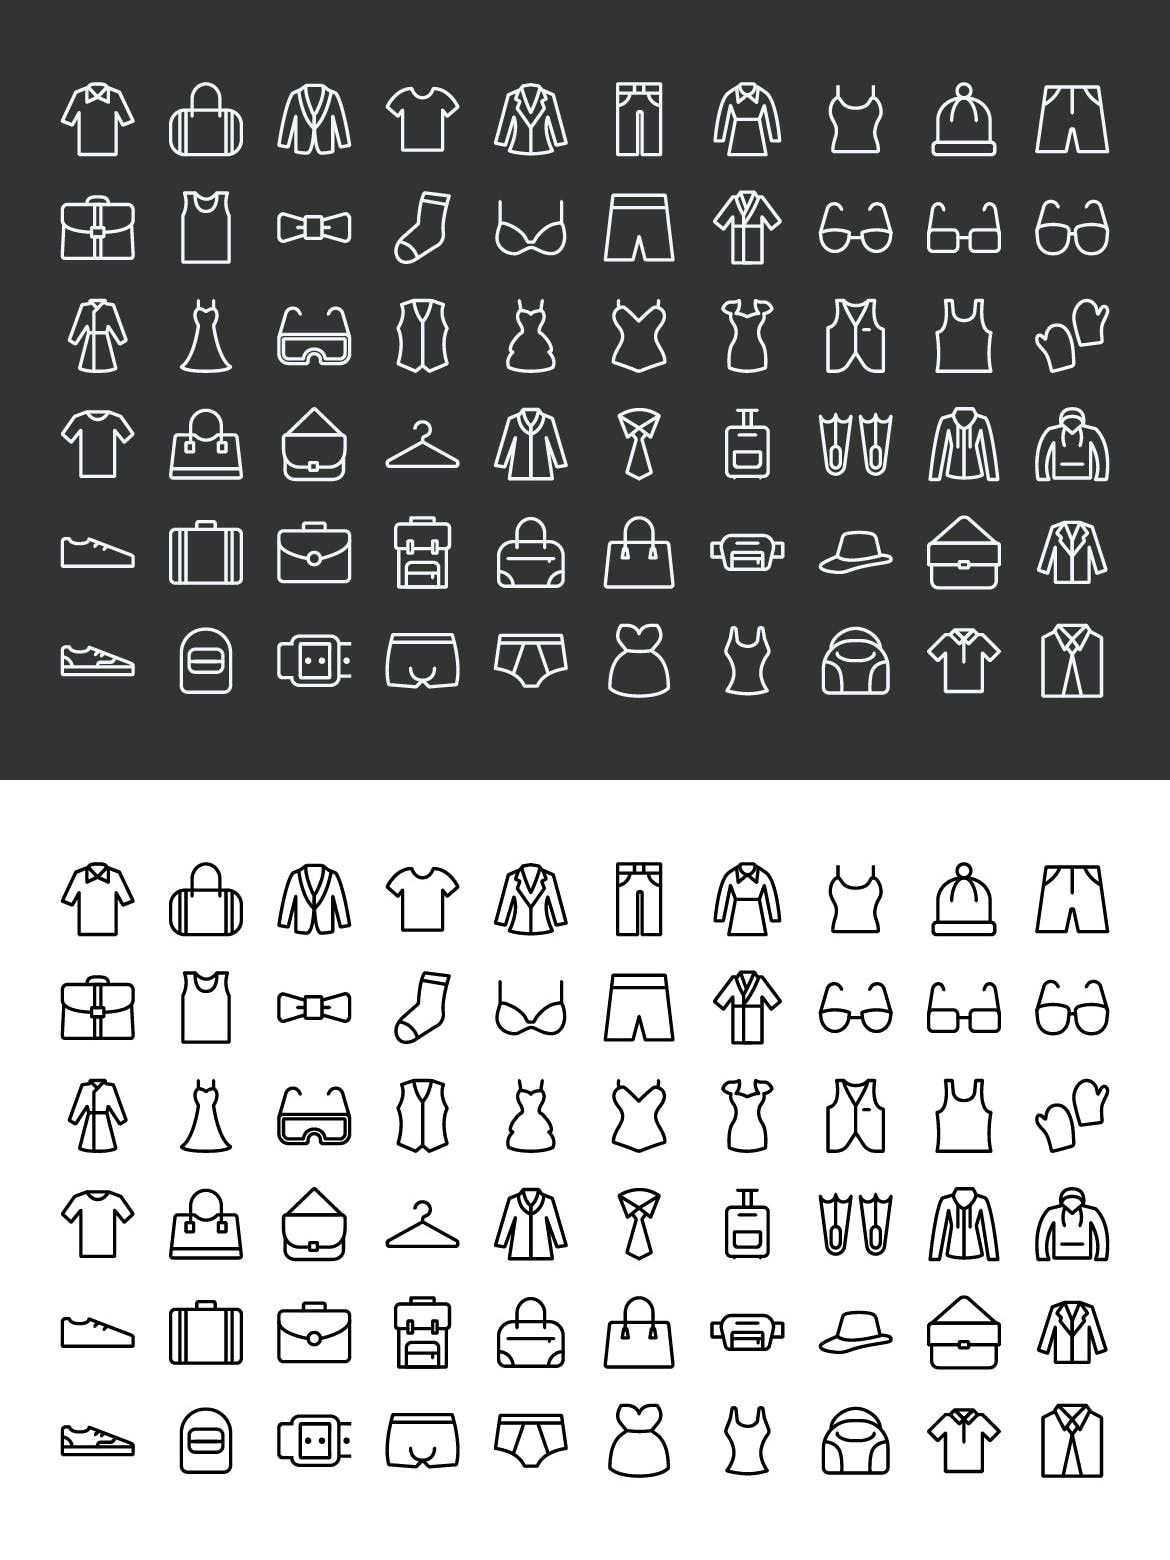 60 Clothing And Fashion Accessories Line Icons Line icon